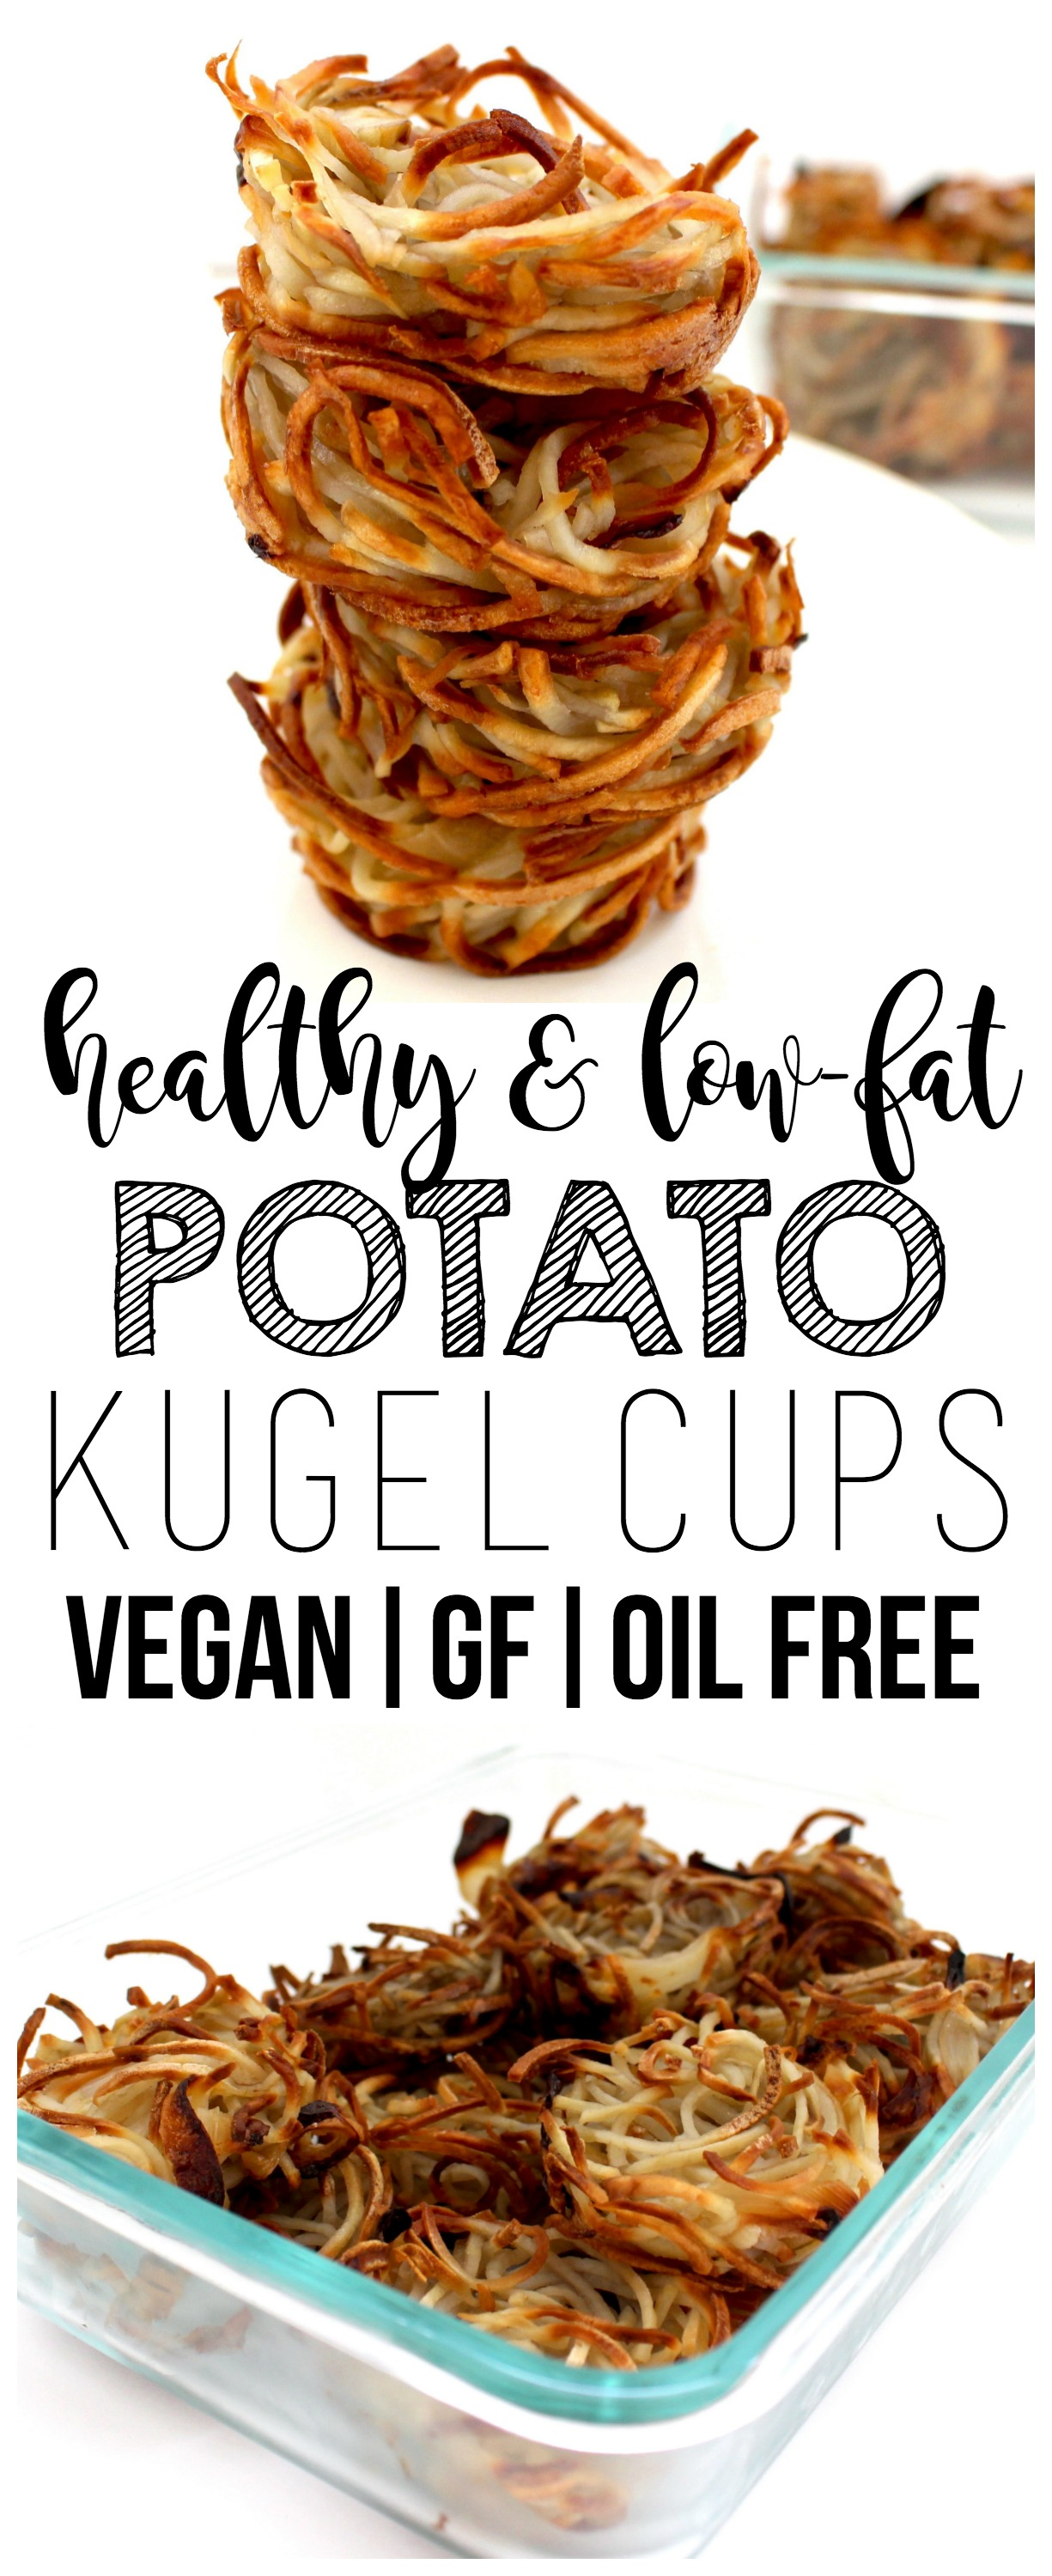 These low-fat & oil-free Vegan Potato Kugel Cups have all the amazing, comforting taste and flavor of traditional potato kugel with a fraction of the calories! Gluten-free & low-calorie, too - only 37 calories each!